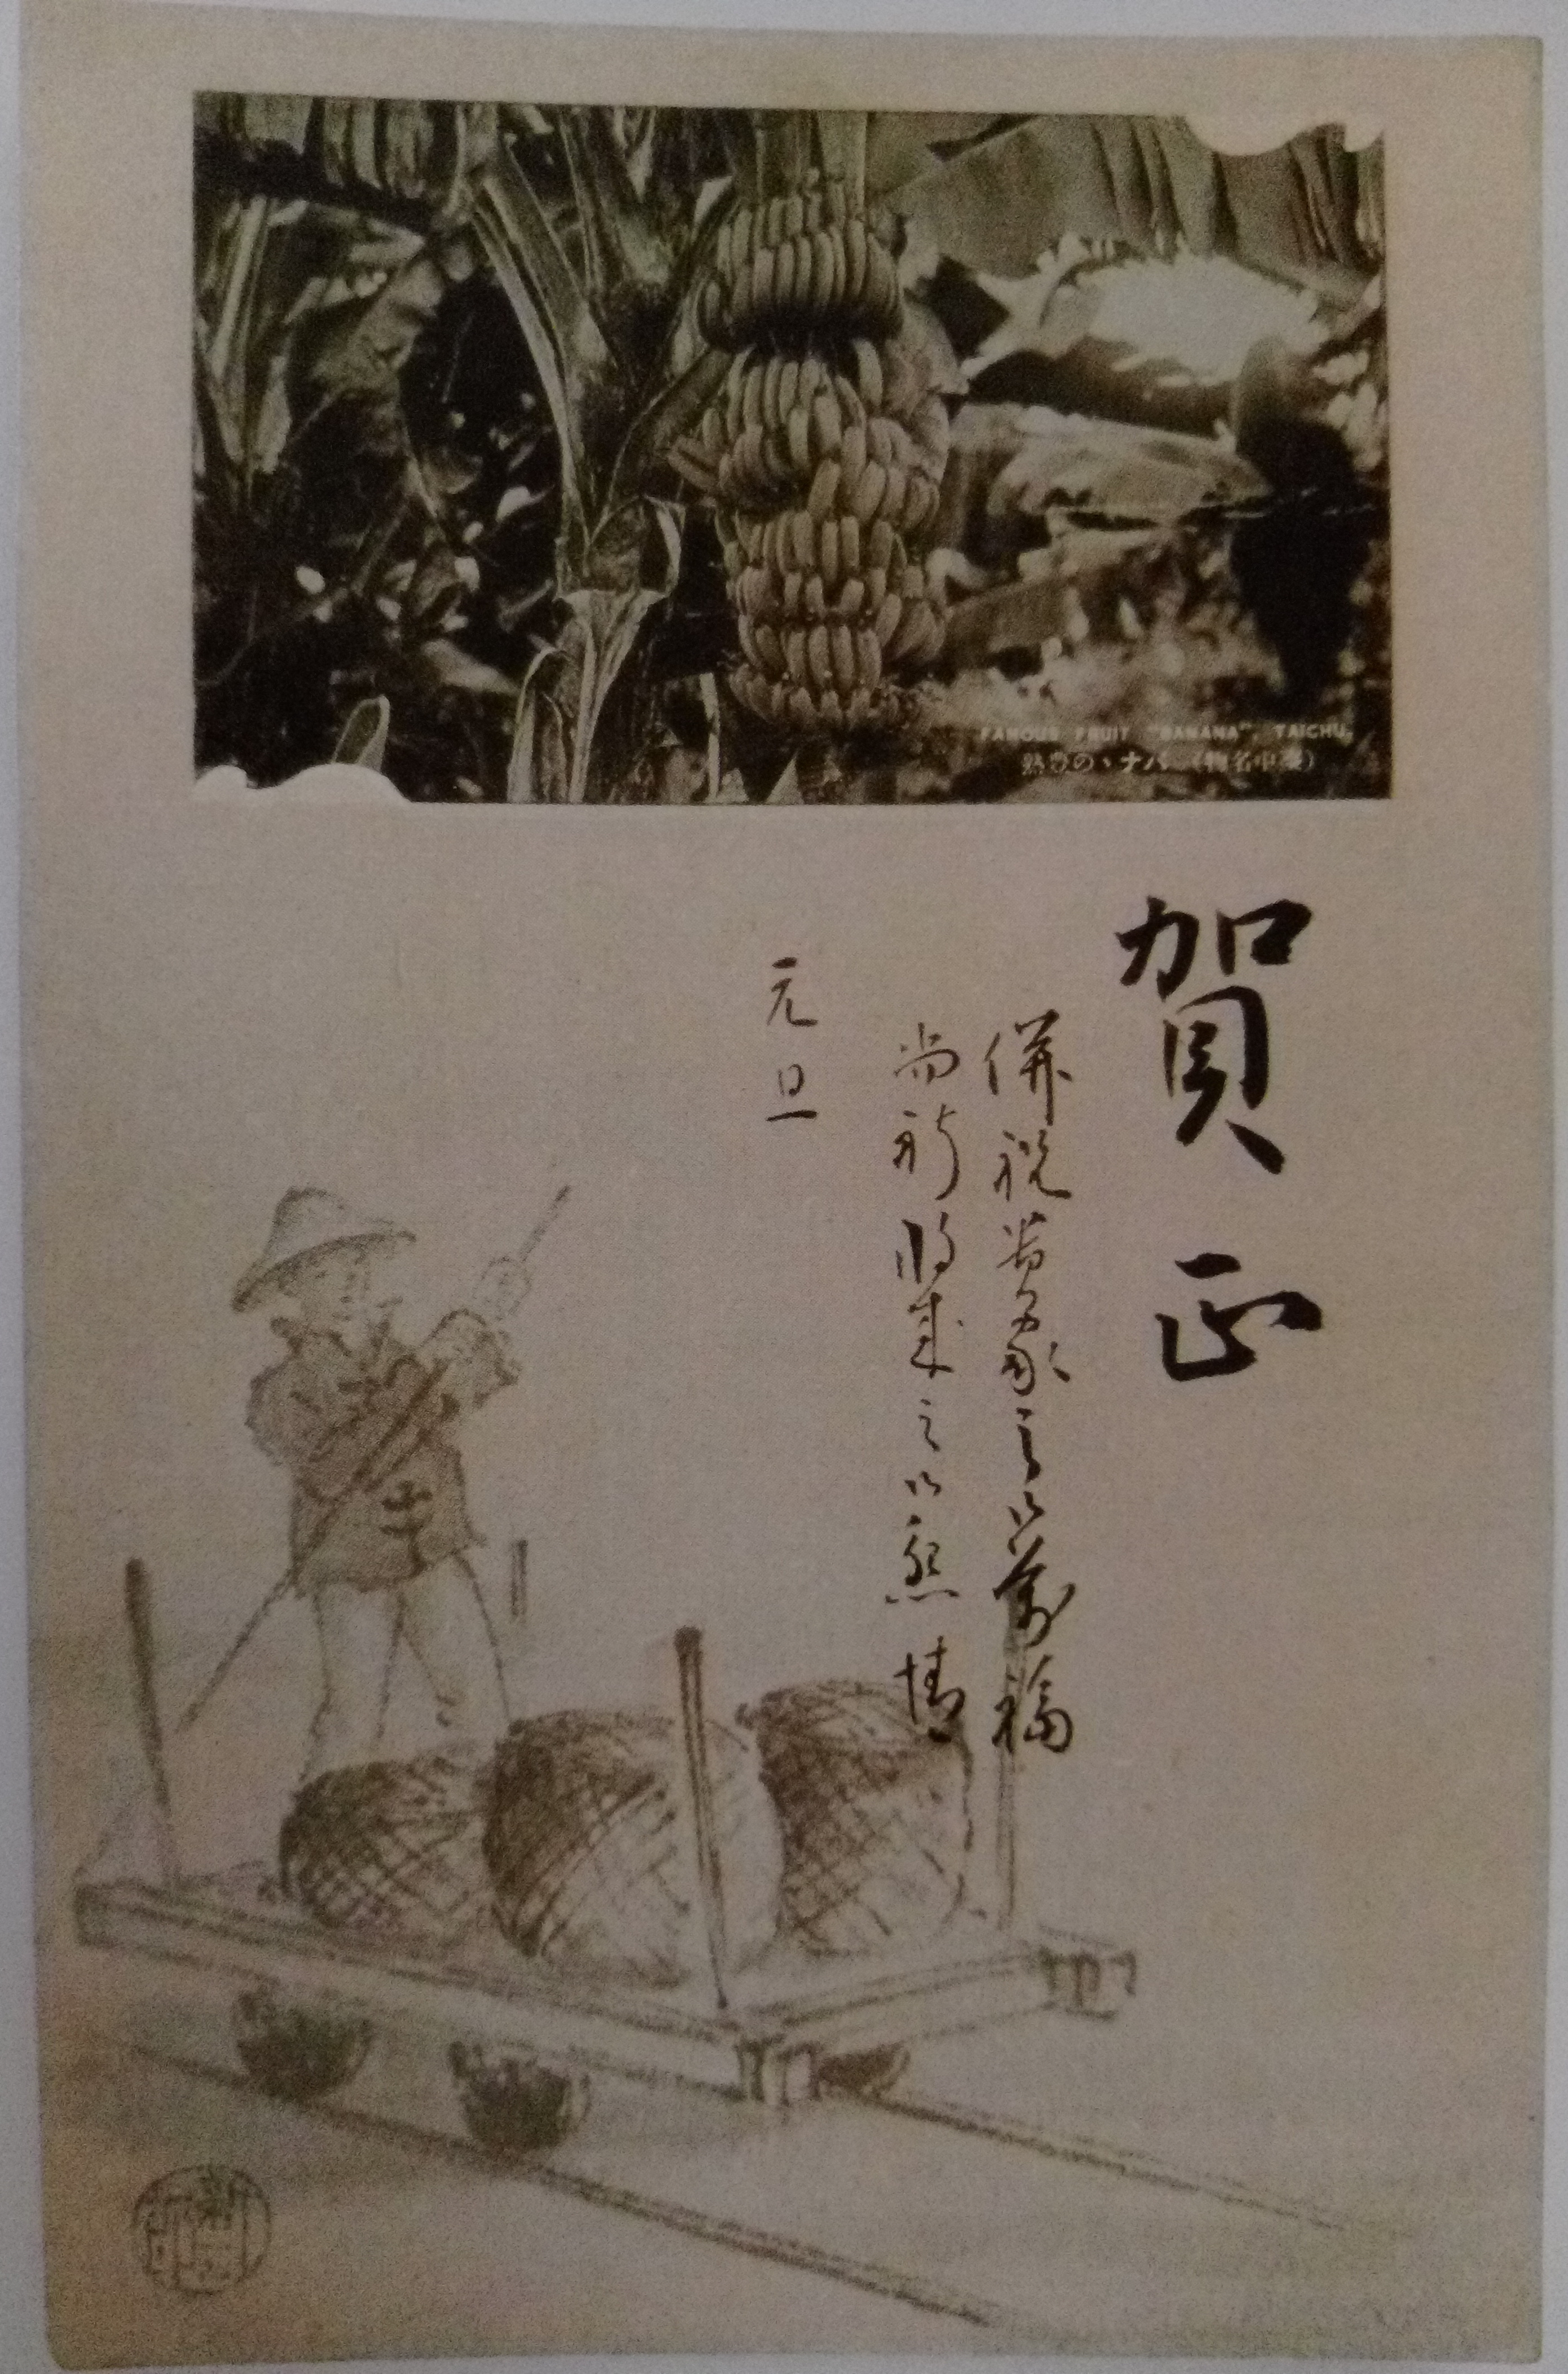 English Japanese new year postcard with a view of a banana plant and a drawing of a Chinese man on a push car railway